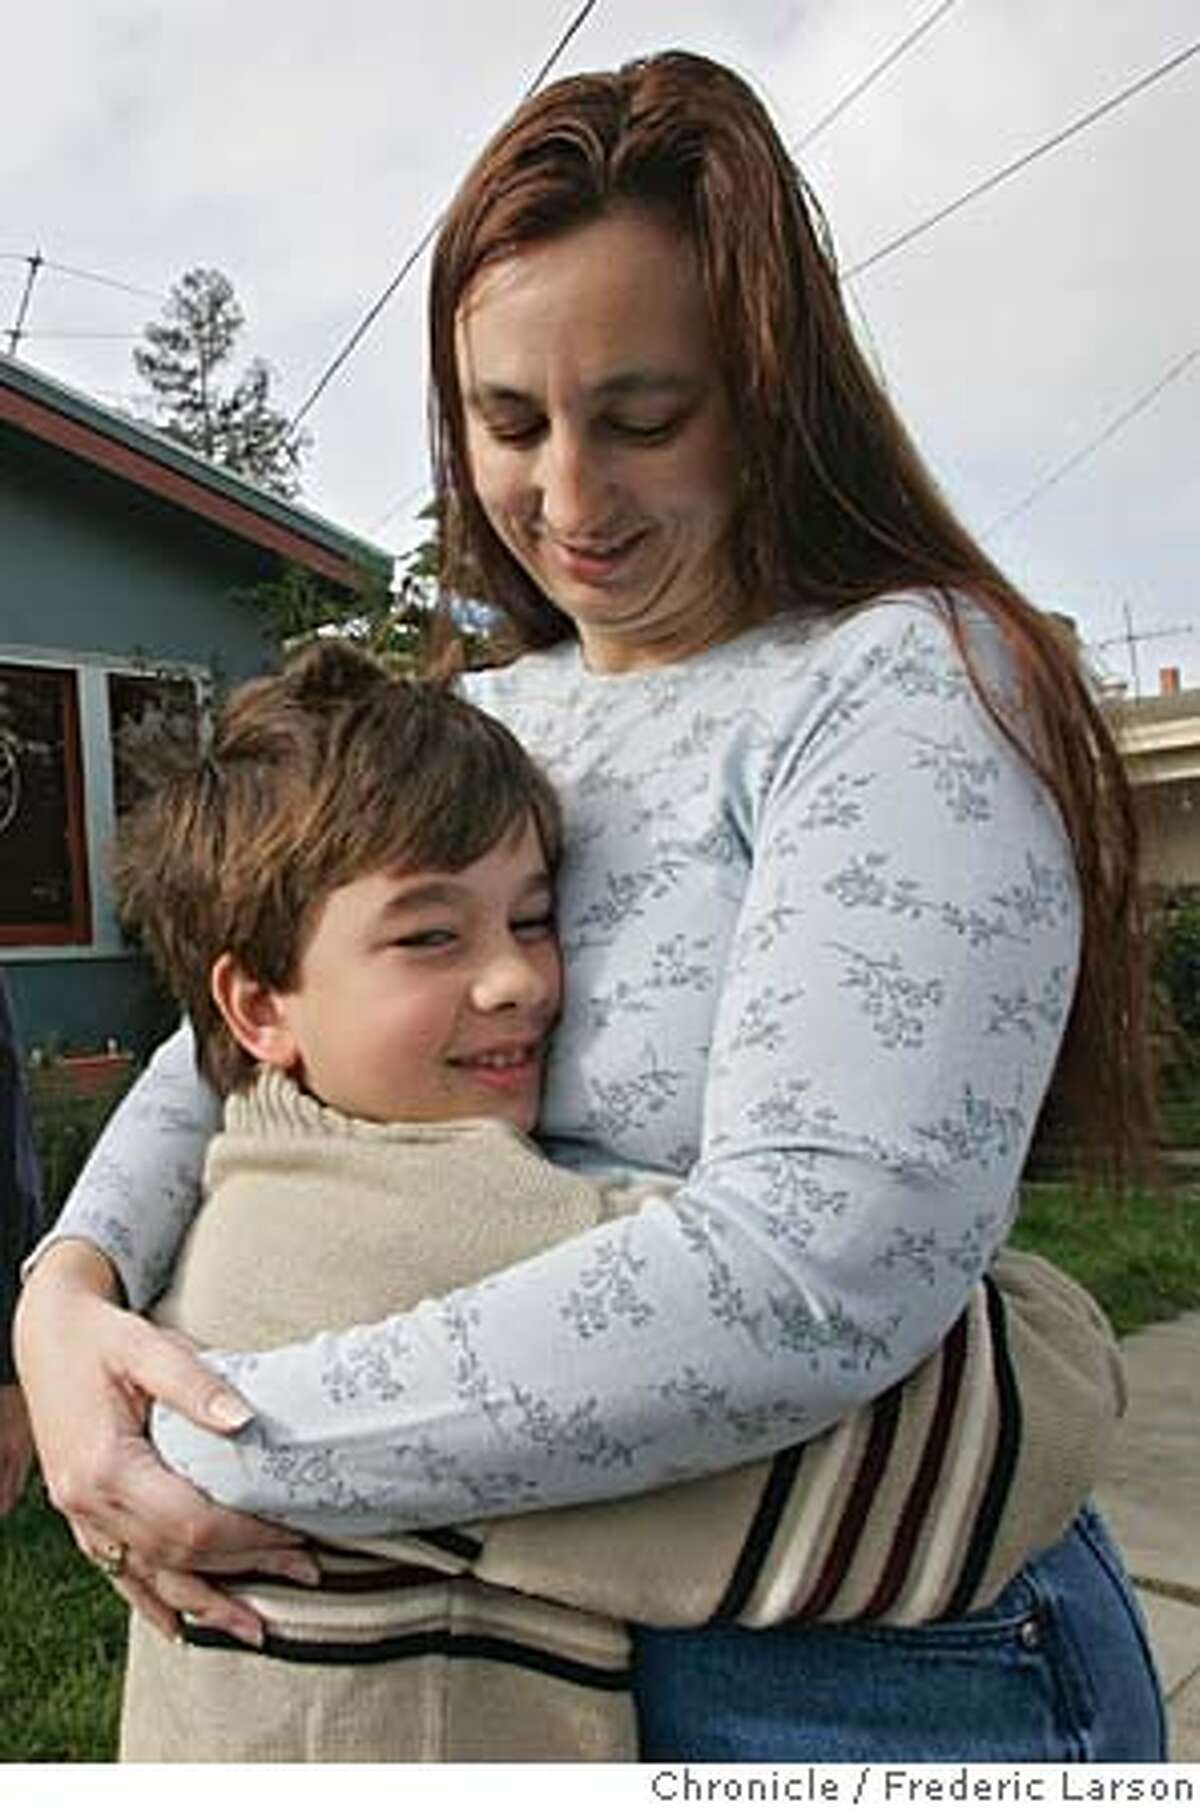 SAVINGS_0051_fl.jpg Sue McCullough gets a warm hug form her son Alec (8) Braks outside their home in Oakland. They are examples of people who fell into debt and pulled themselves out. They are the kicker anecdote in a story called SAVINGS30 that says -- Americans ain't saving. 12/26/05 Oakland CA Frederic Larson San Francisco Chronicle